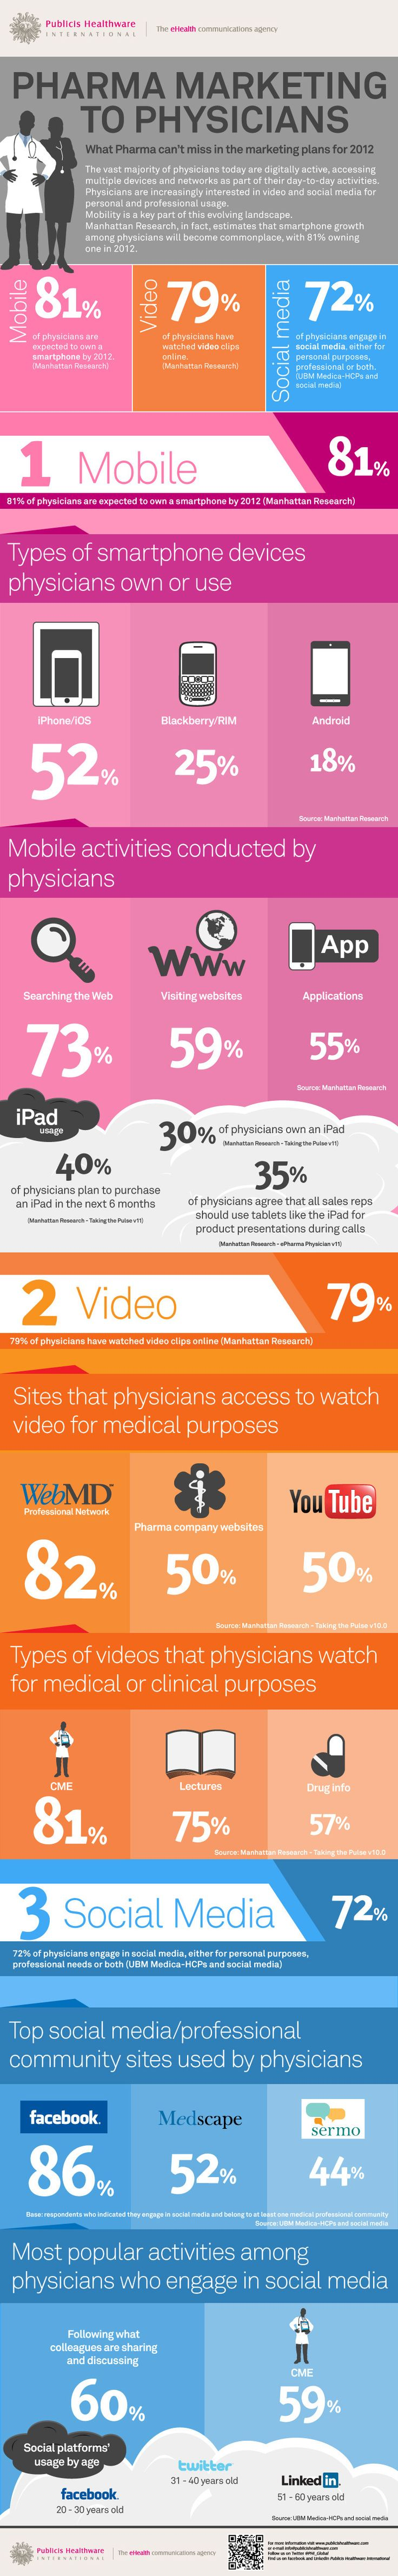 images about life of a pharma rep pharma marketing to physicians infographic